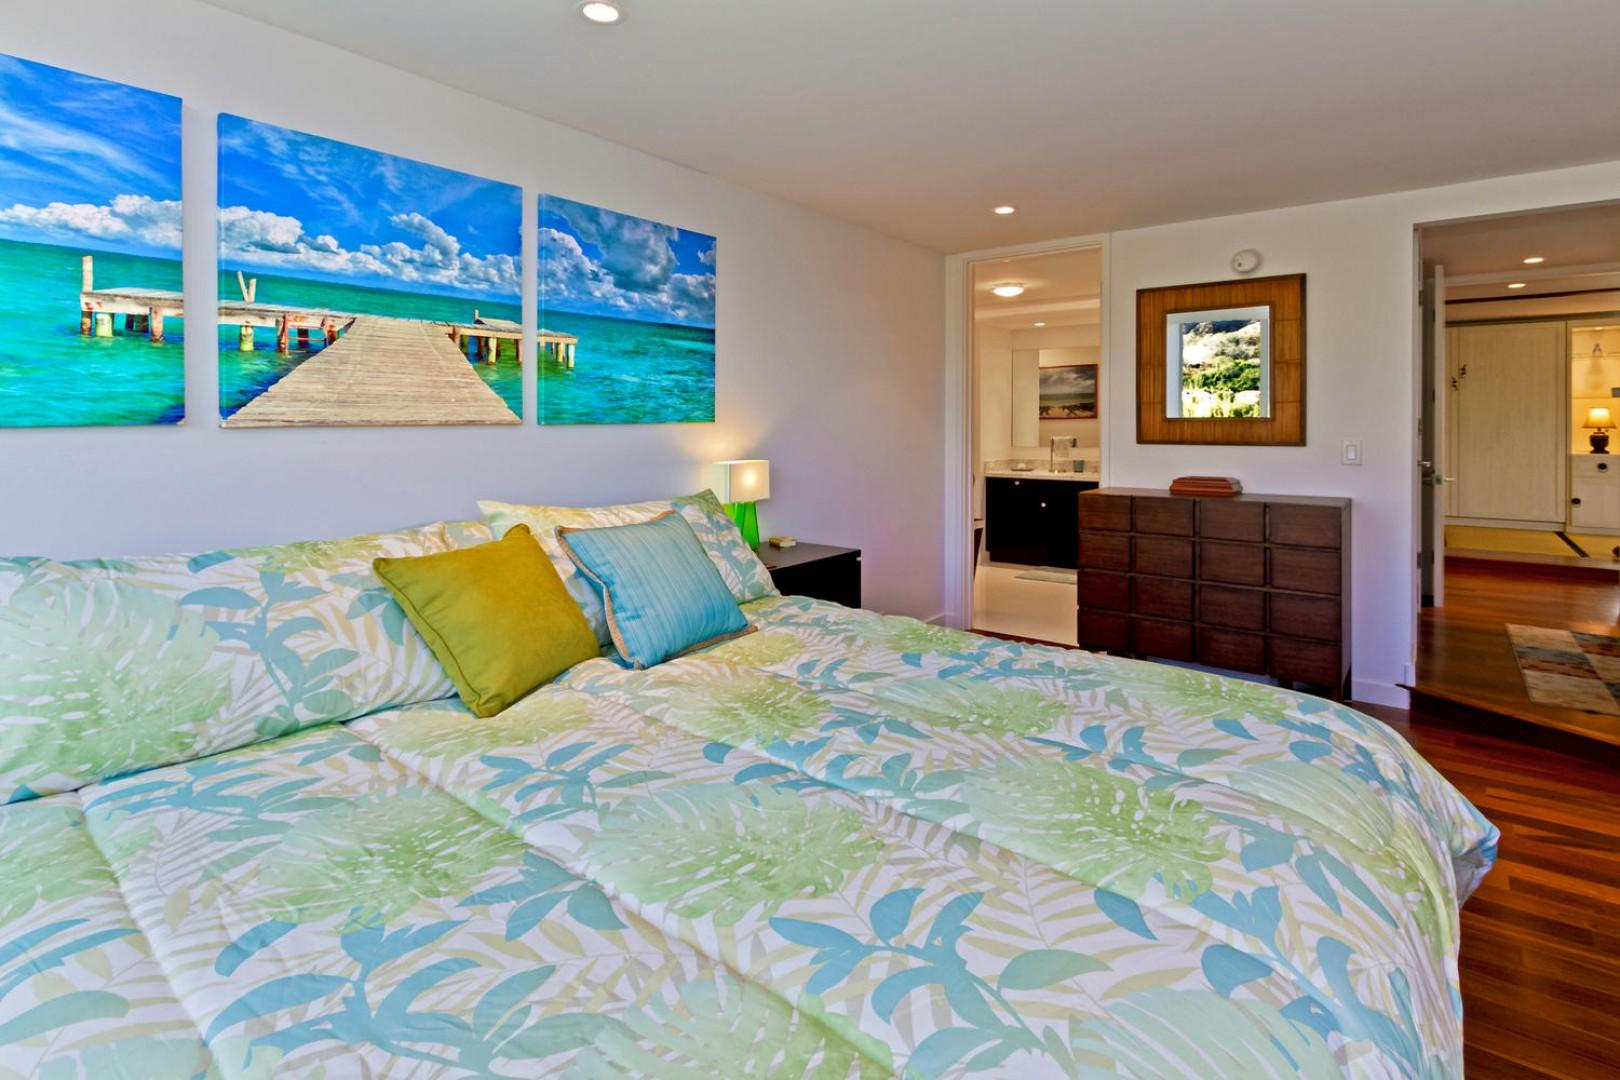 Master bedroom with a king-size bed. Television in room is not pictured.